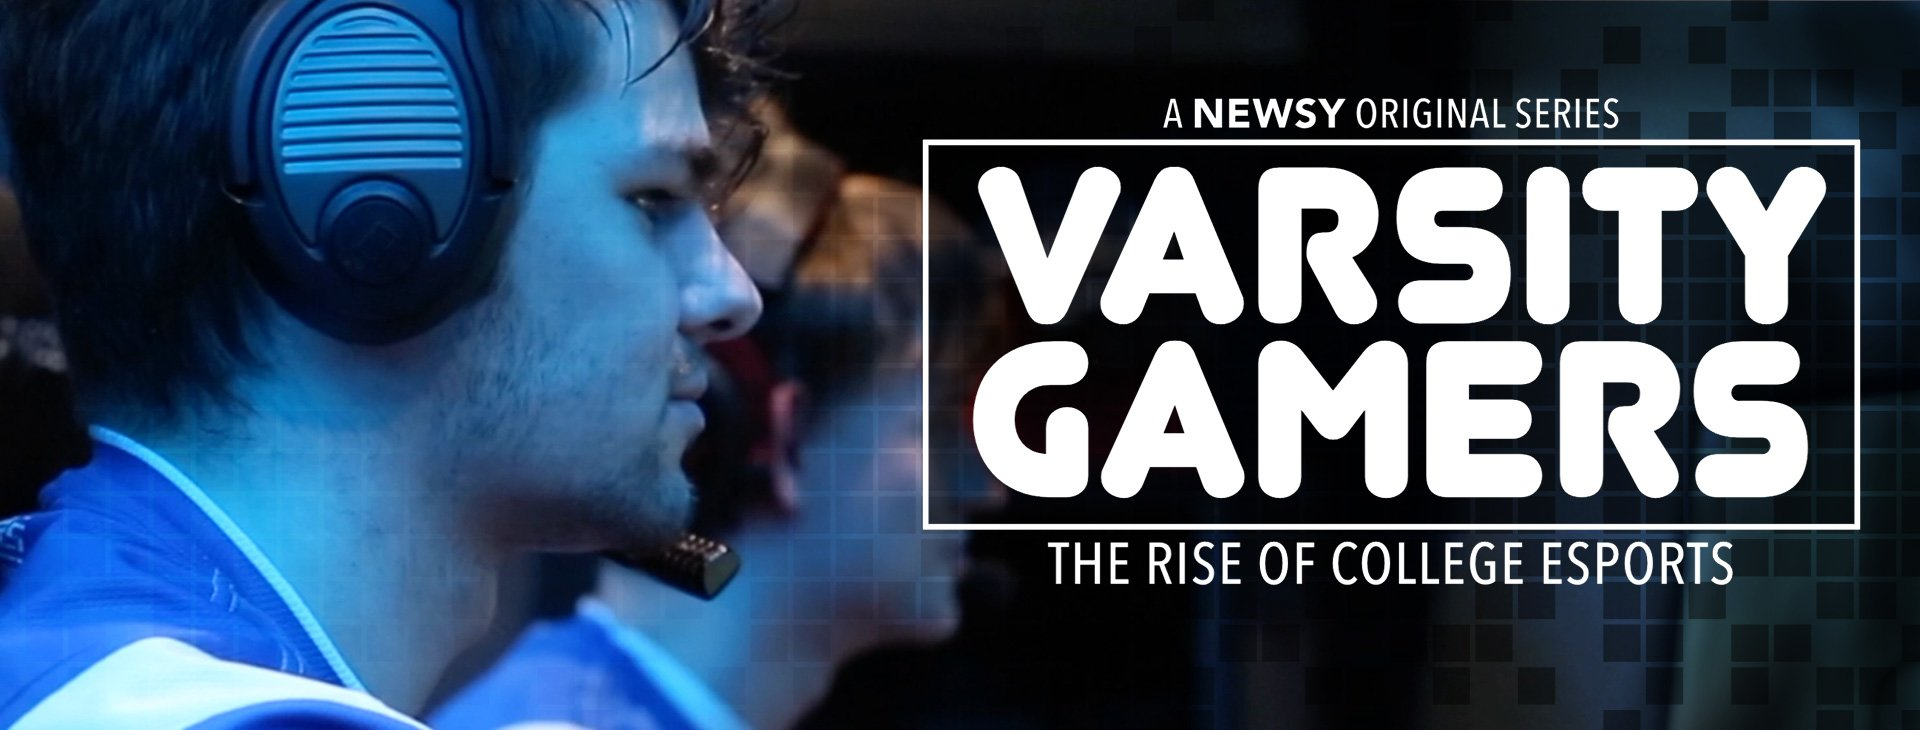 Varsity Gamers: The Rise of College e-Sports